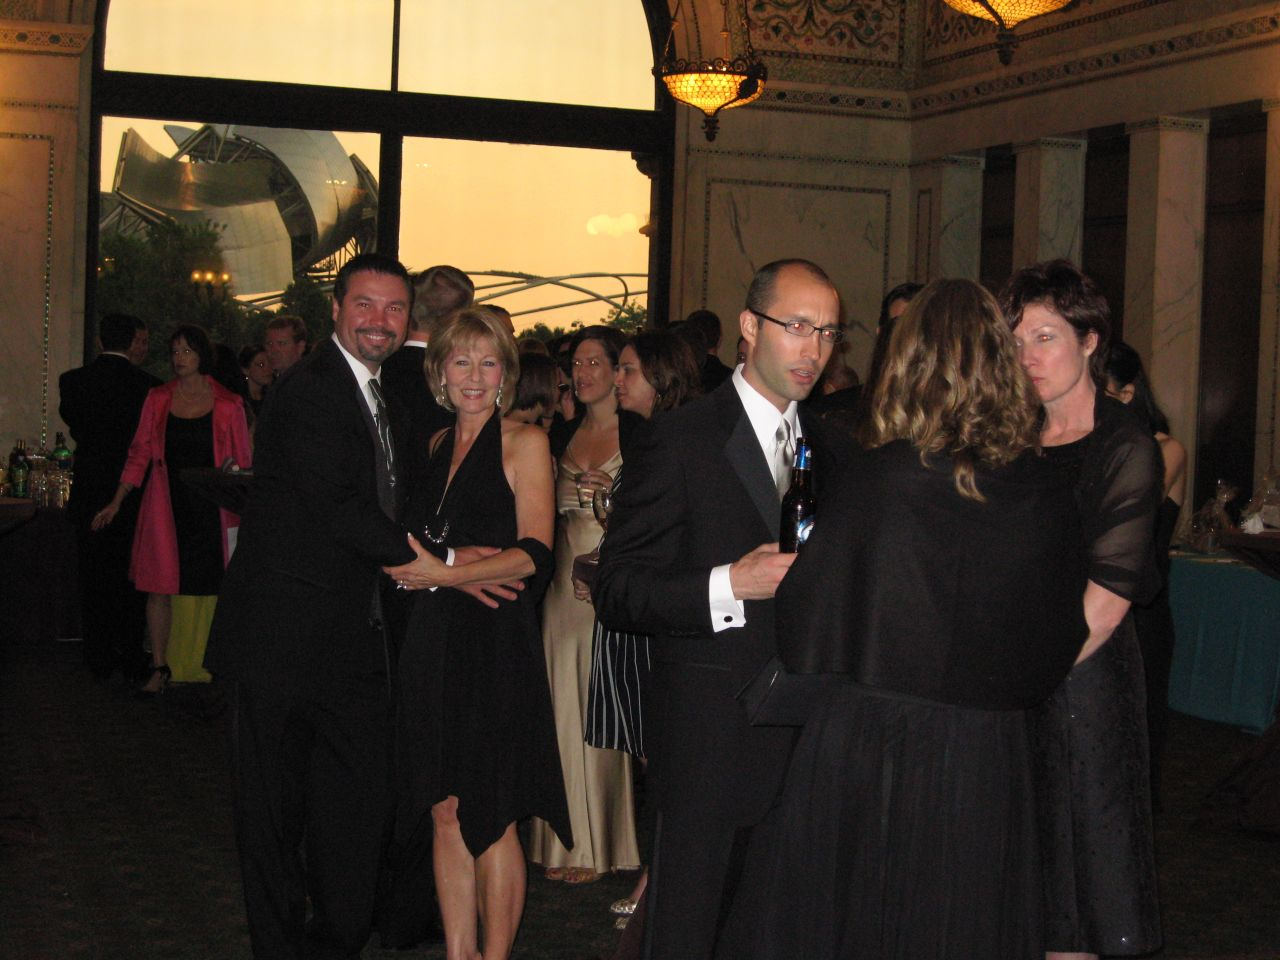 The Summer Soiree was held at the Chicago Cultural Center.